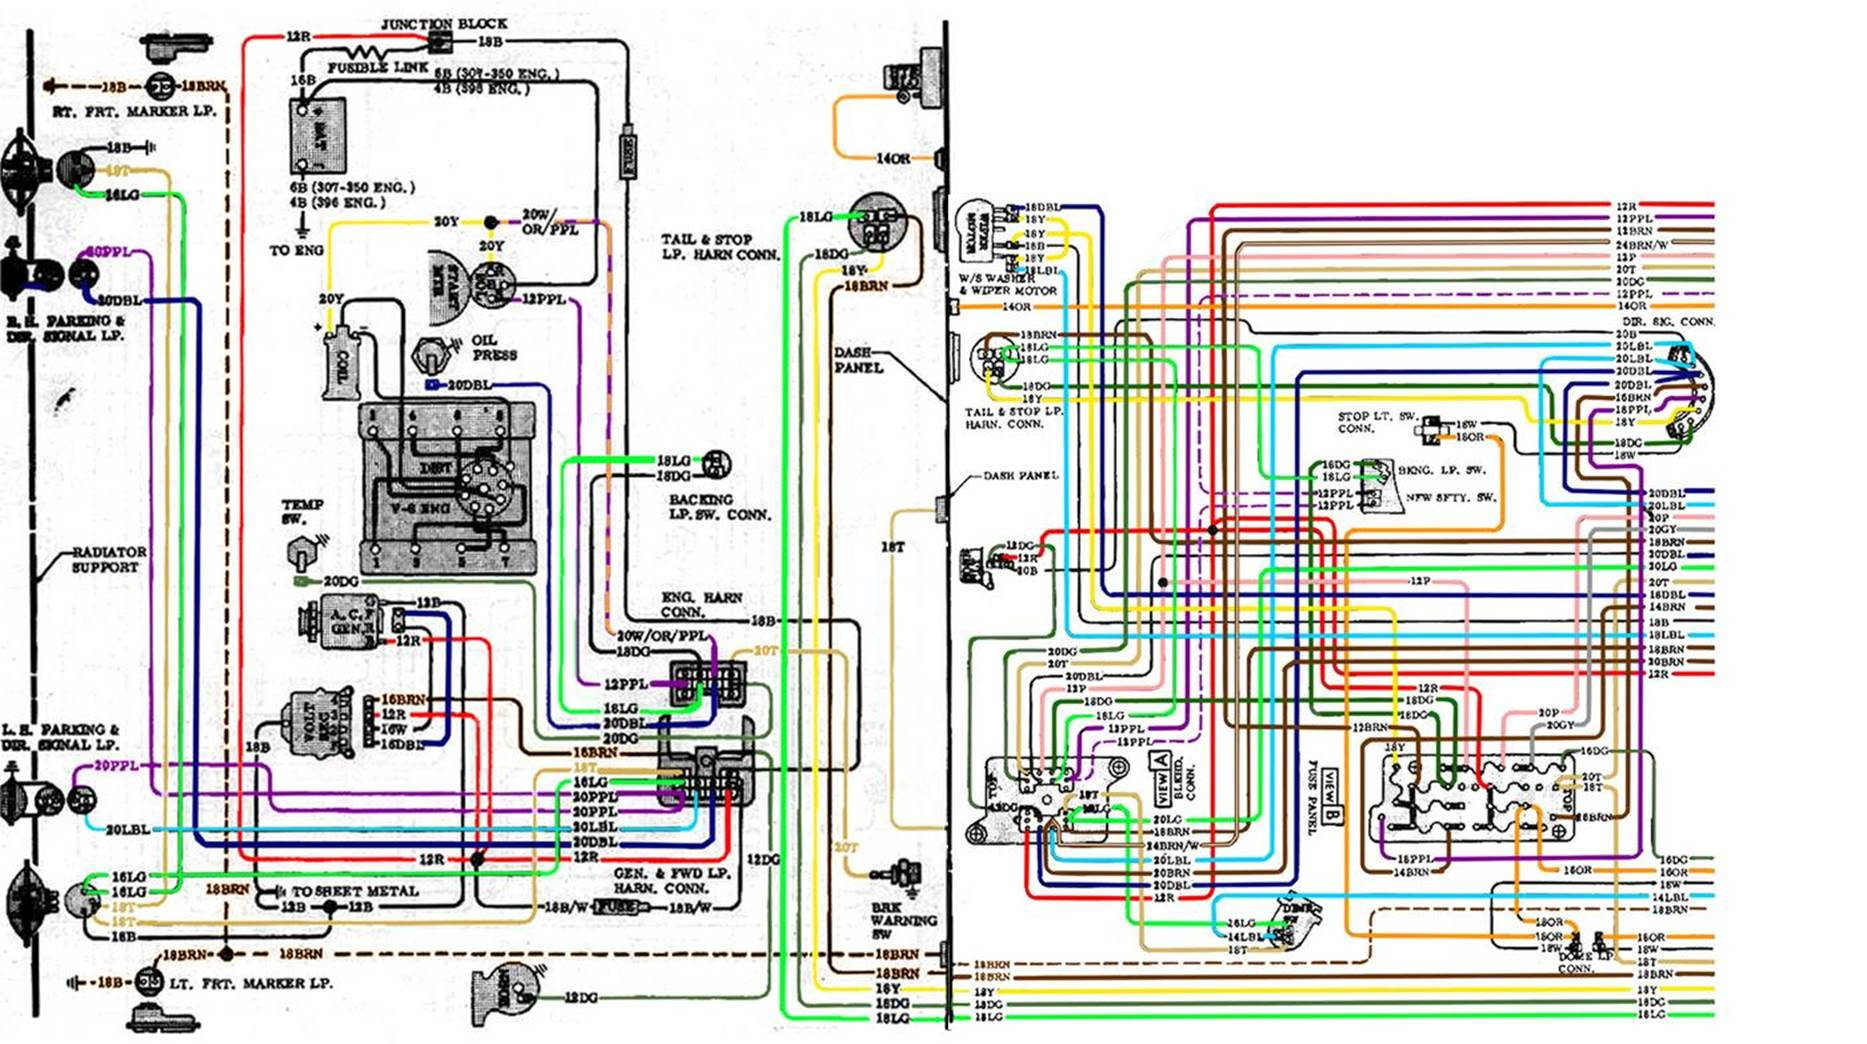 image002 70 chevelle wiring schematic wiring diagram manual